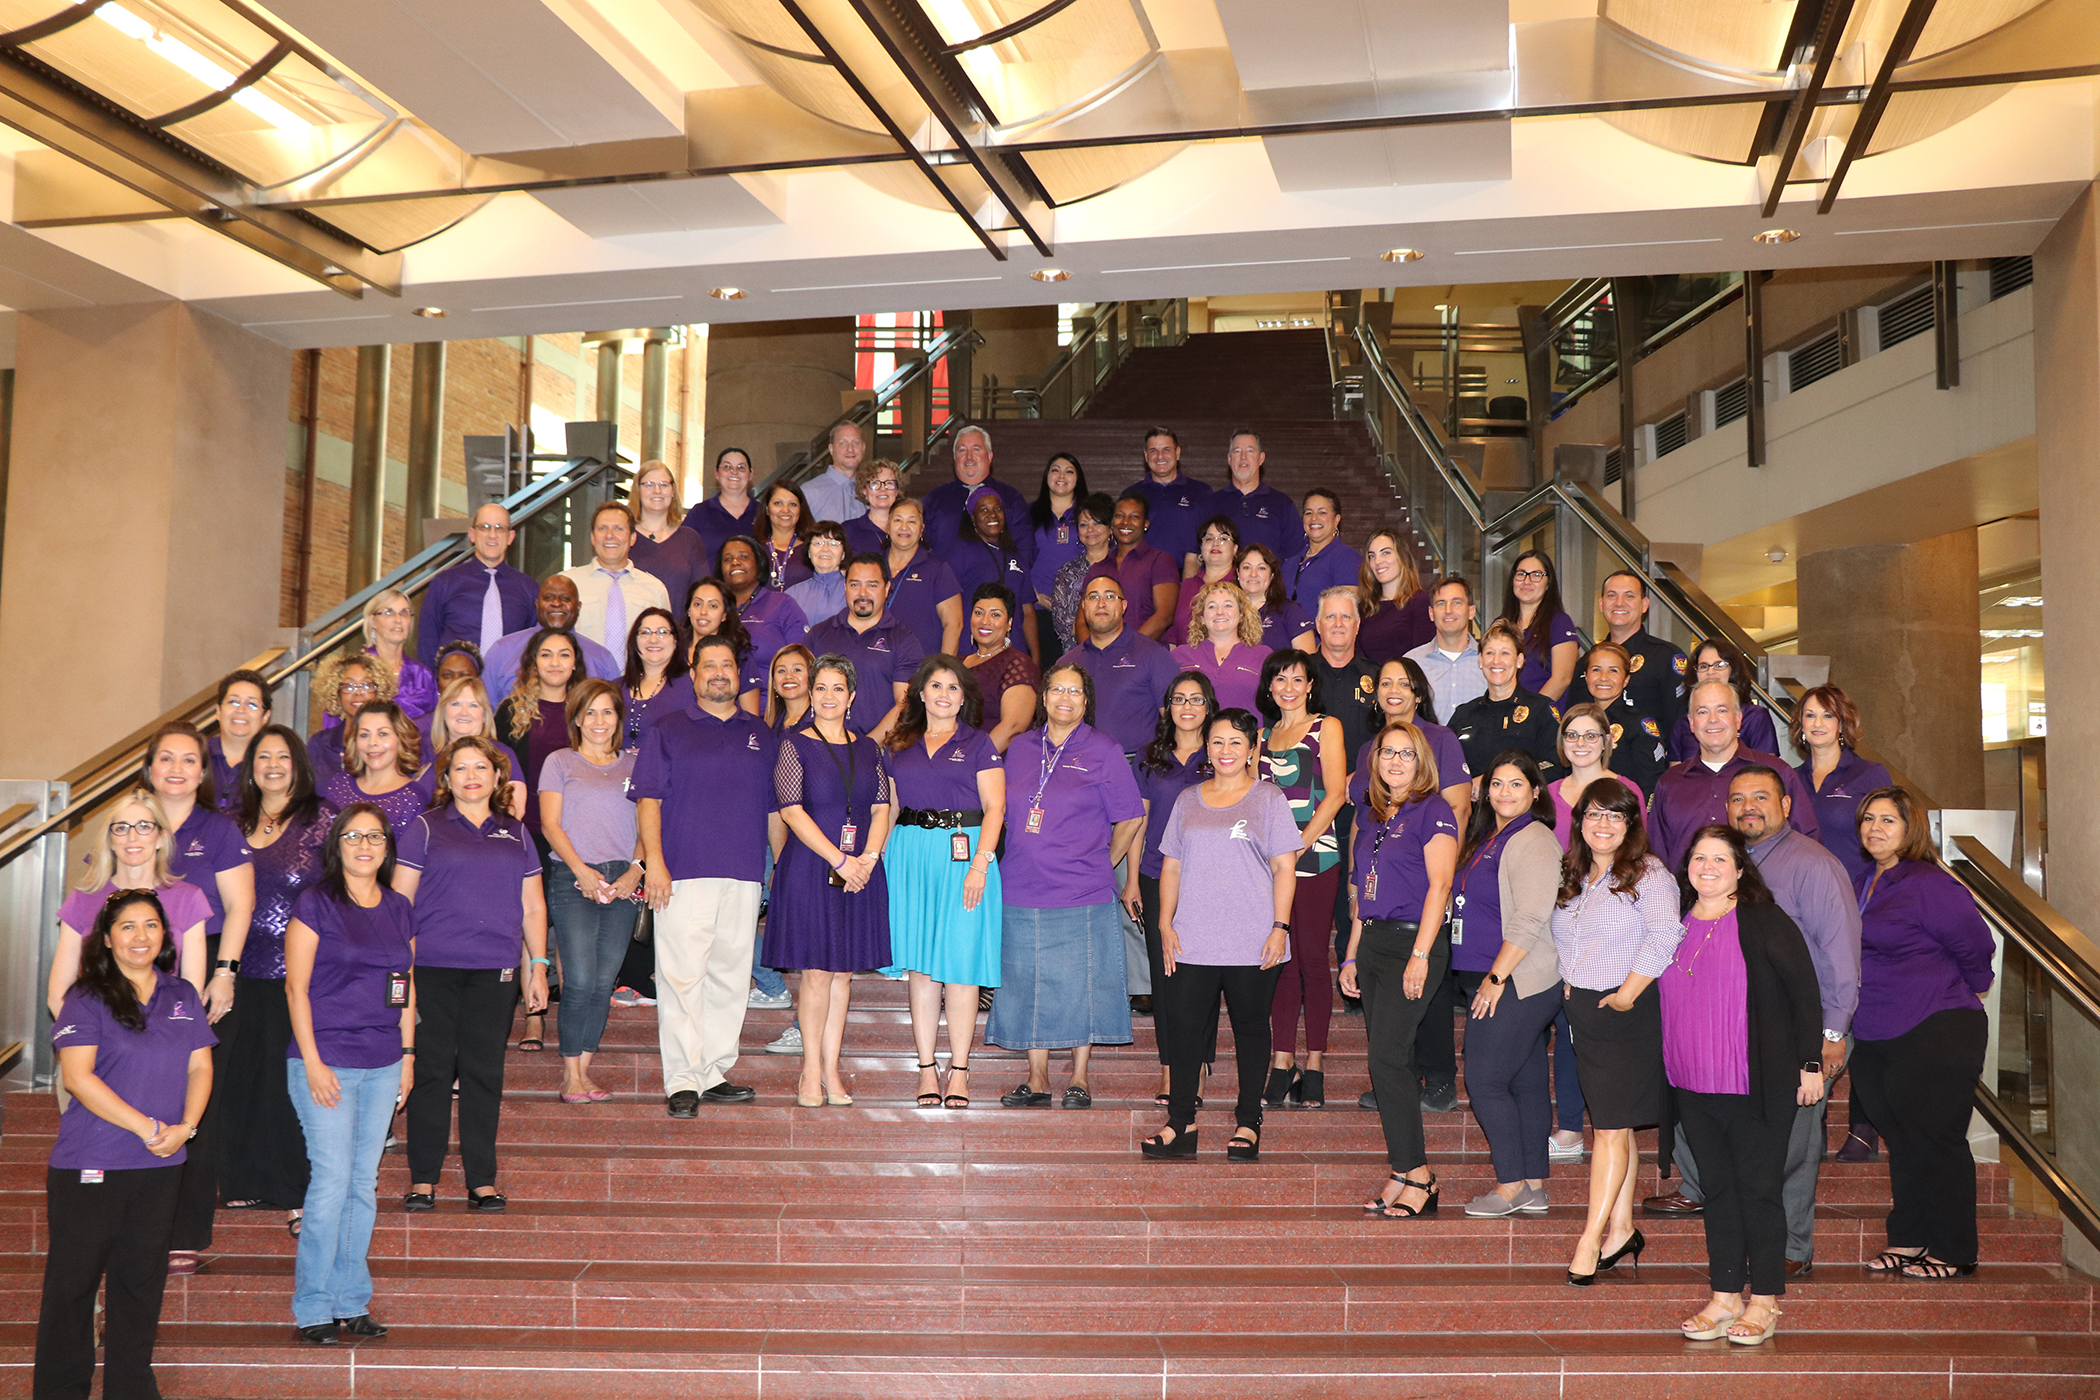 City of Phoenix Staff #PaintPHXPurple